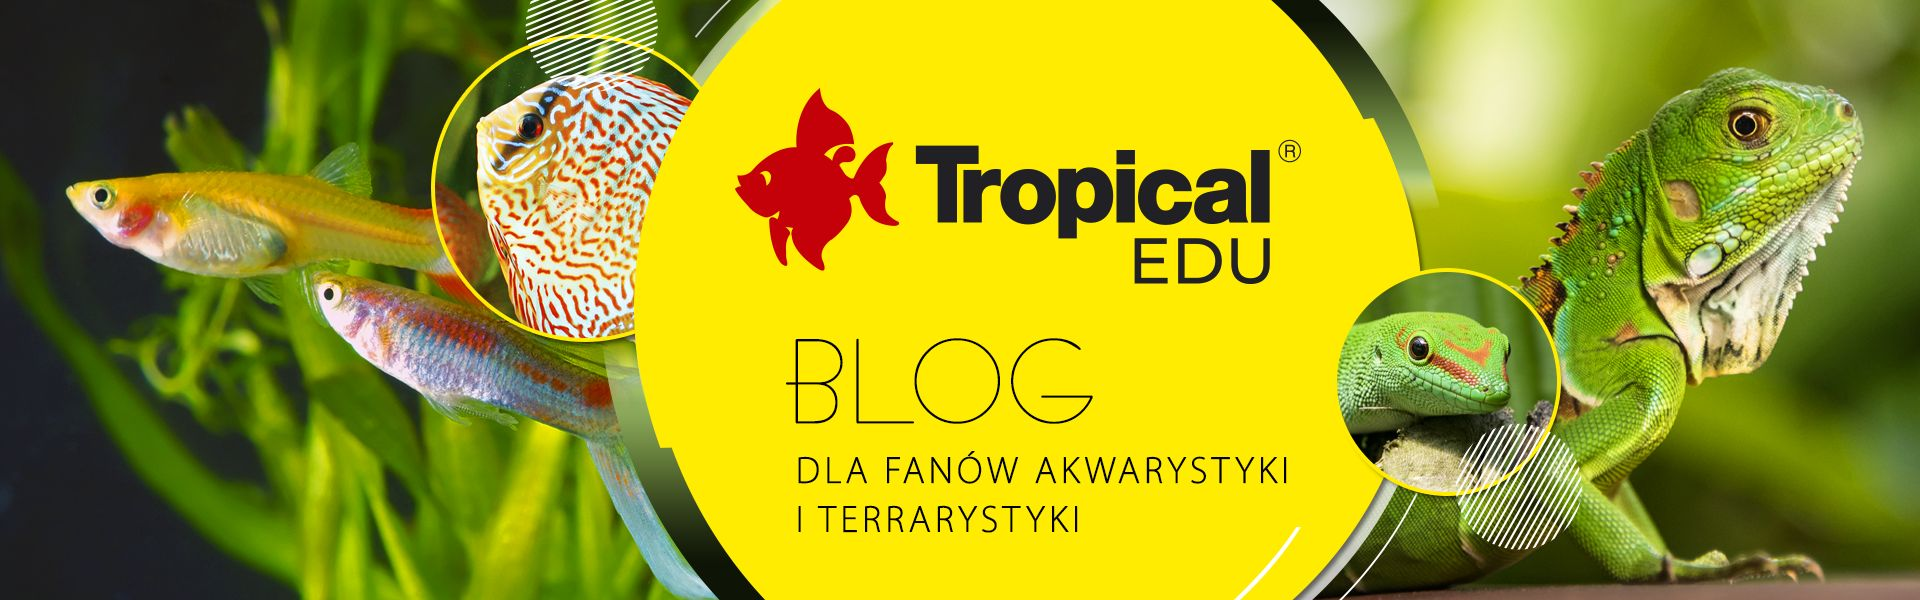 Tropical Edu